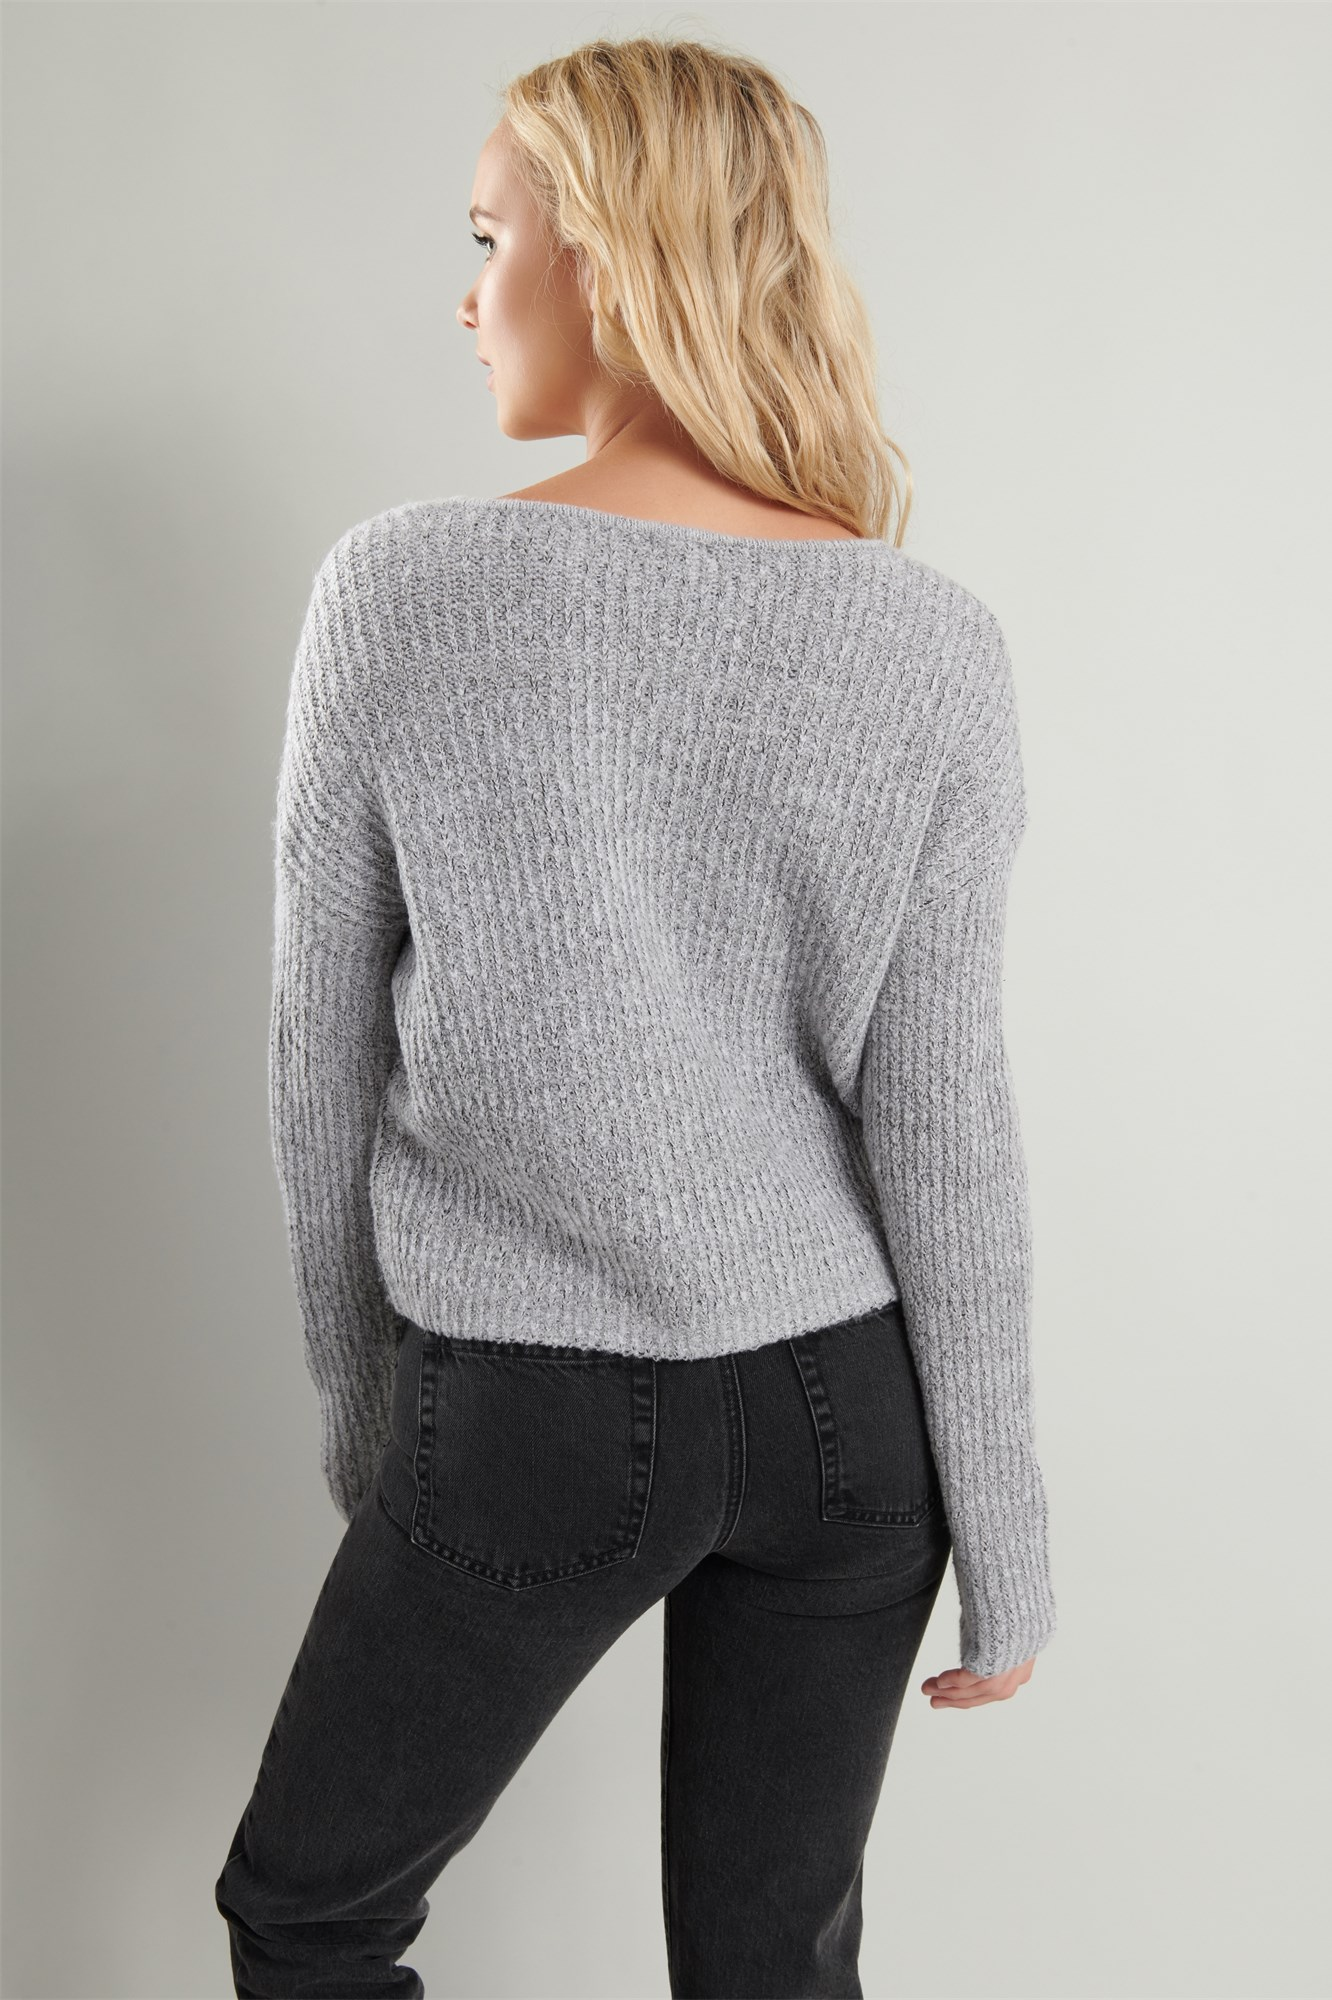 Image 5 of The Kendall V Sweater